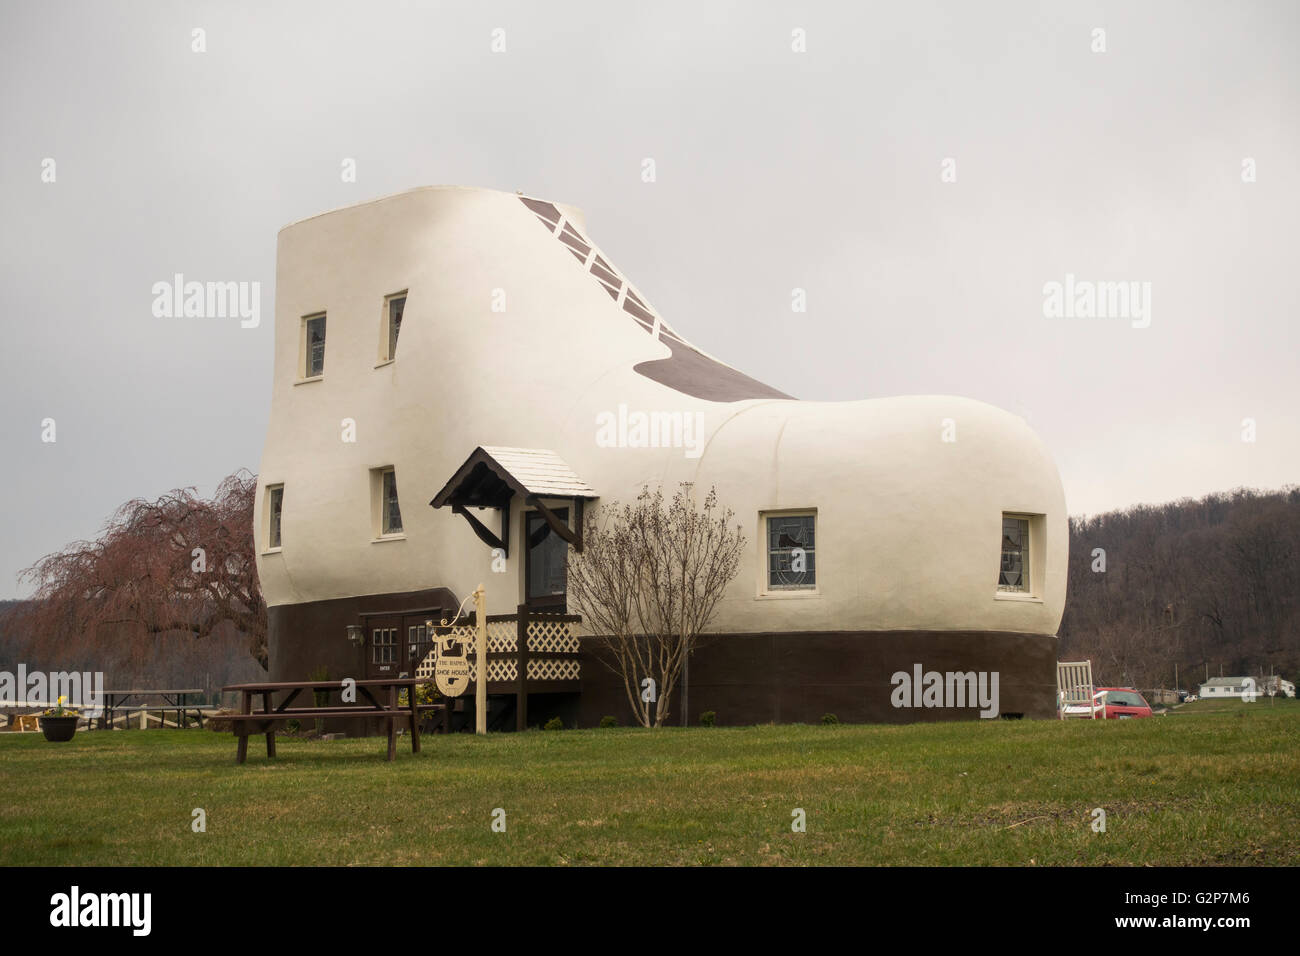 Haines shoe house building in Hallam PA & Haines shoe house building in Hallam PA Stock Photo: 104980518 - Alamy